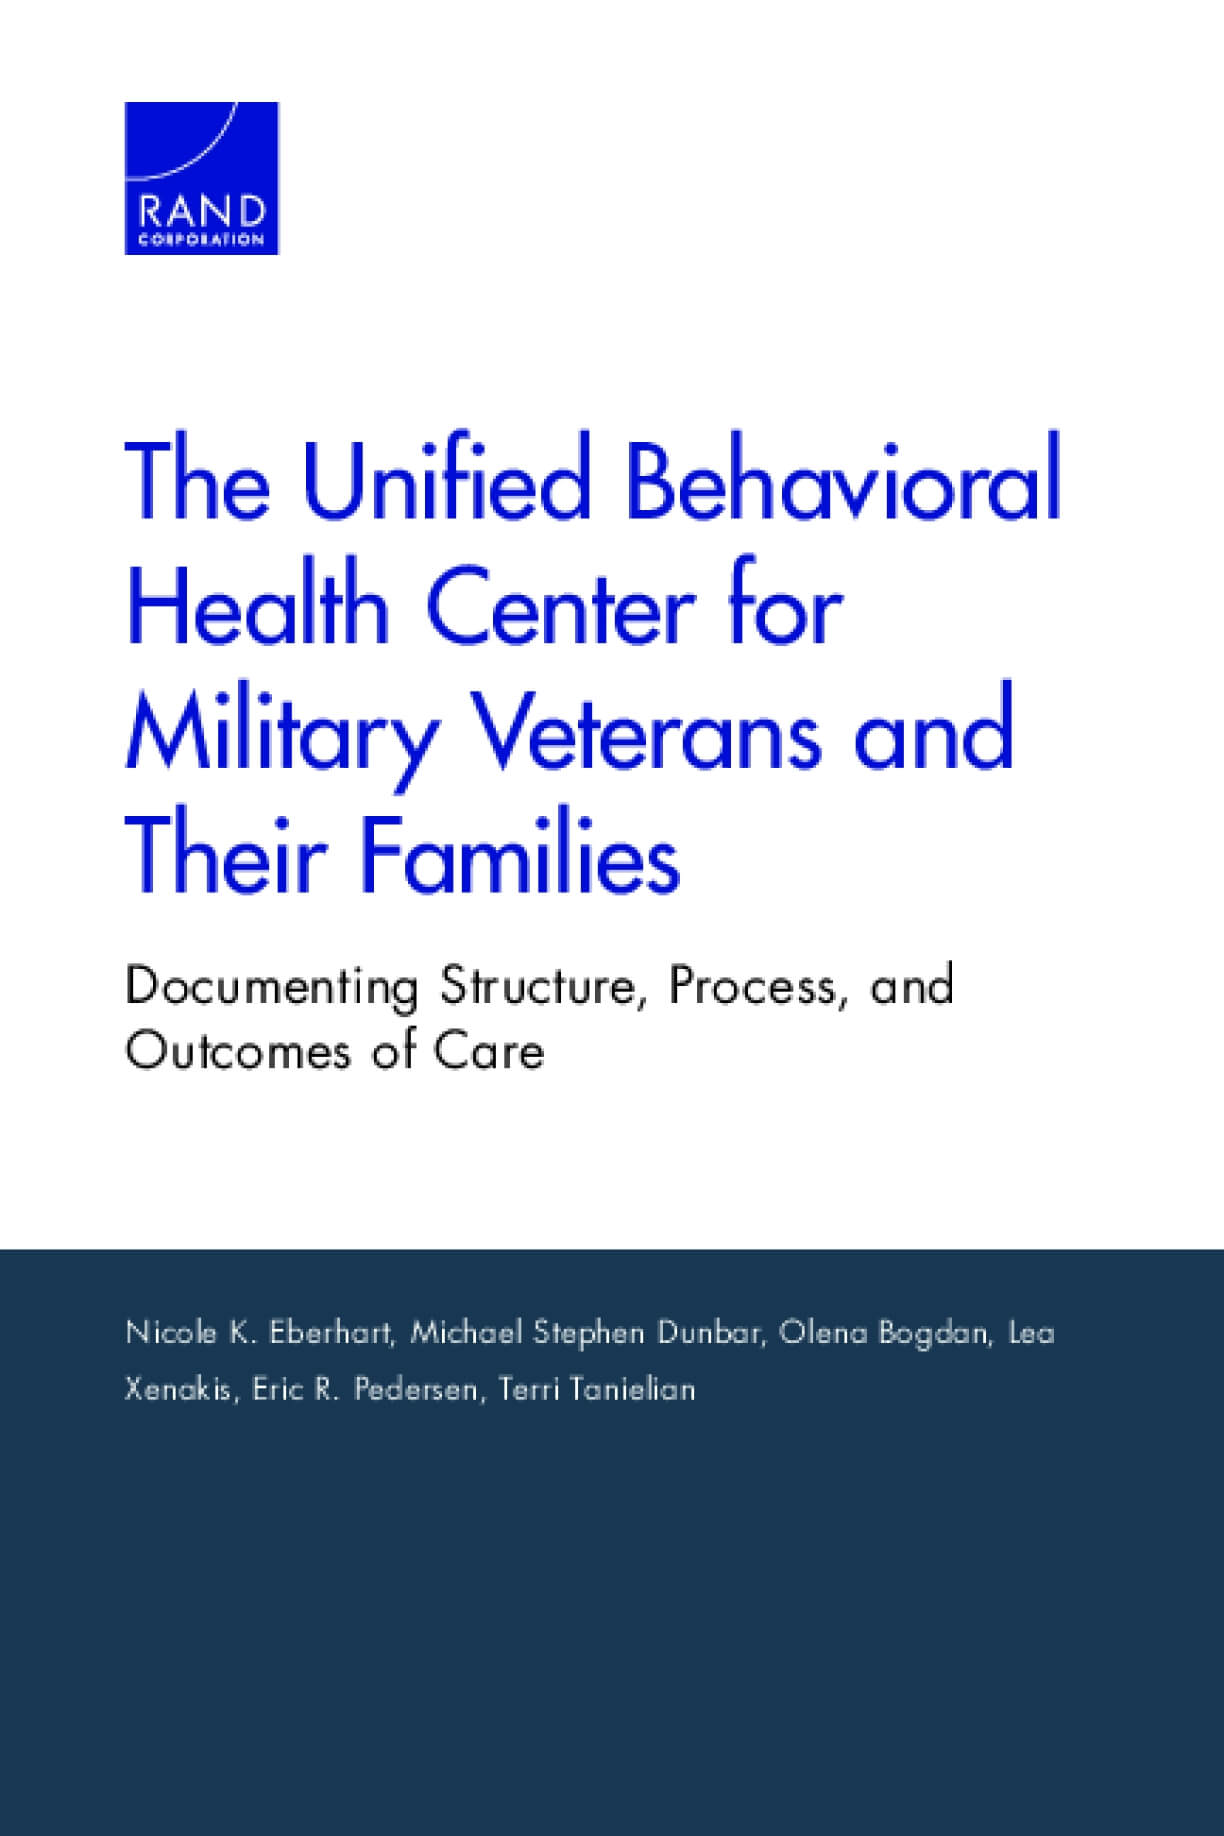 The Unified Behavioral Health Center for Military Veterans and Their Families